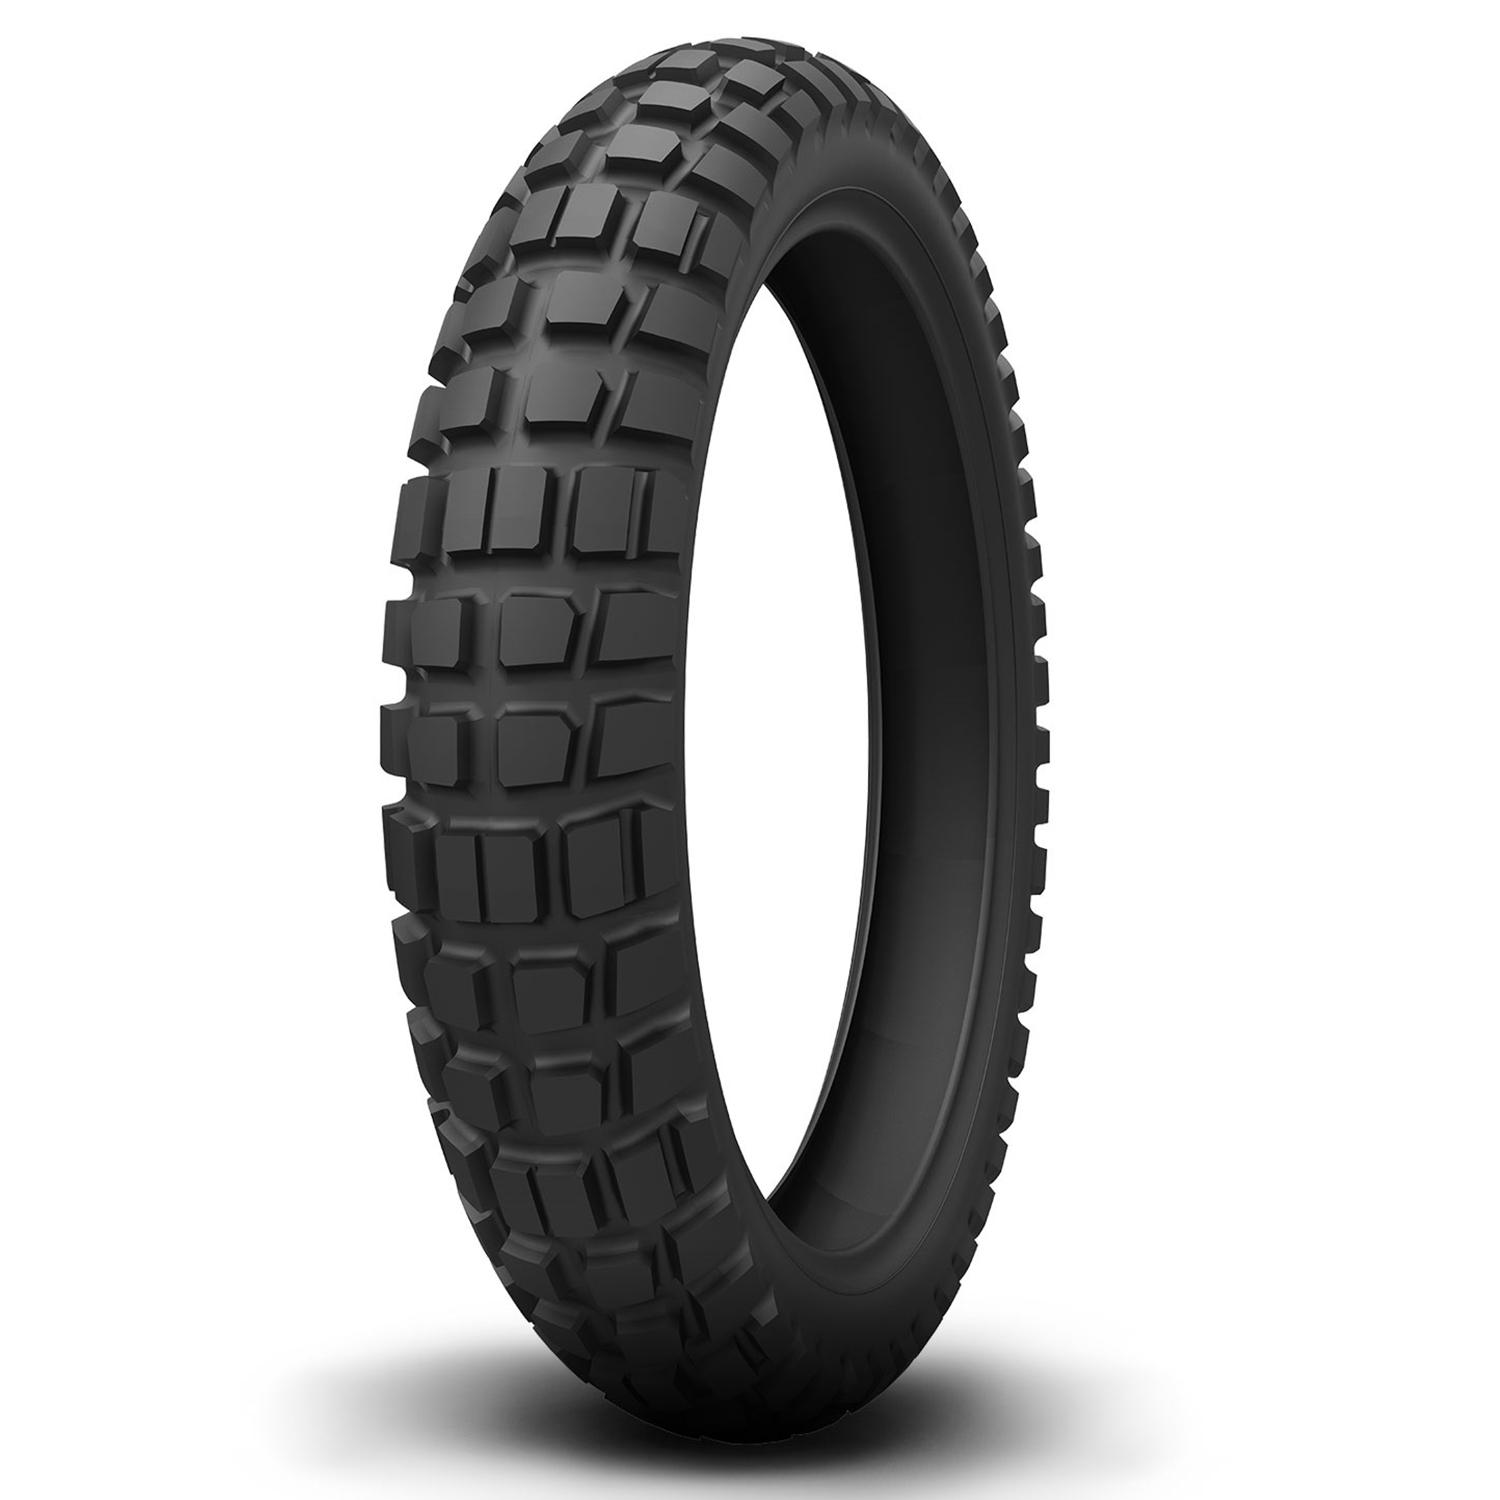 Kenda K426 A 3.50 10 Tubeless Front/Rear Two-Wheeler Tyre